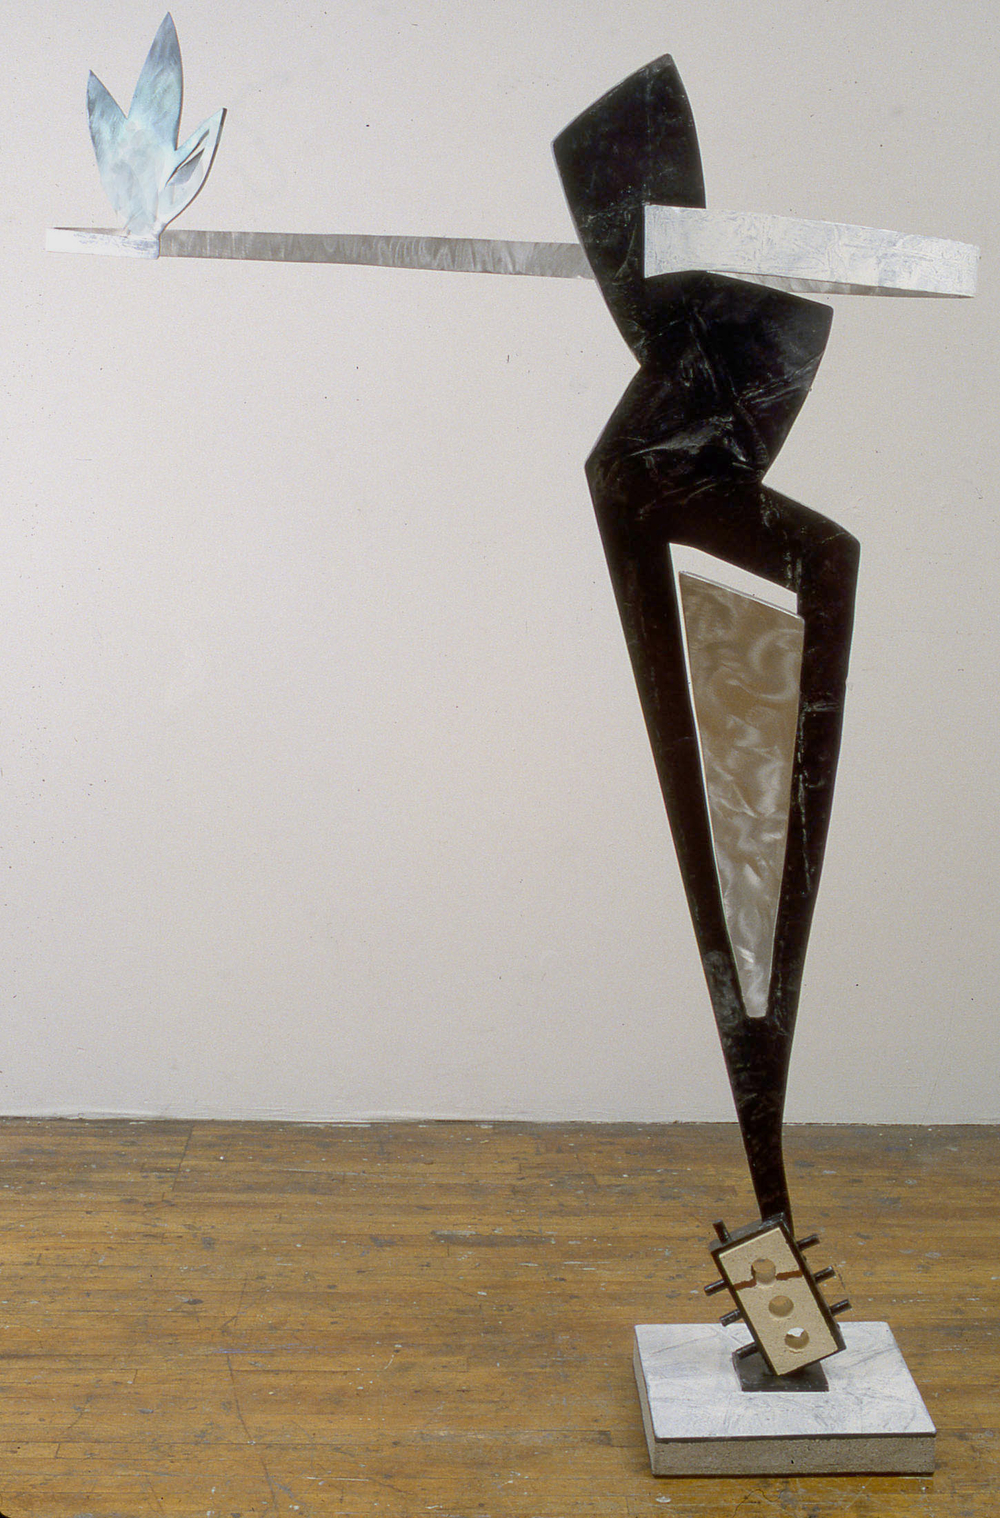 "To Reach a Brick     1998   Acrylic Urethane, Aluminum, Brick, and Concrete  78"" x 50"" x 17""  (D-204)"